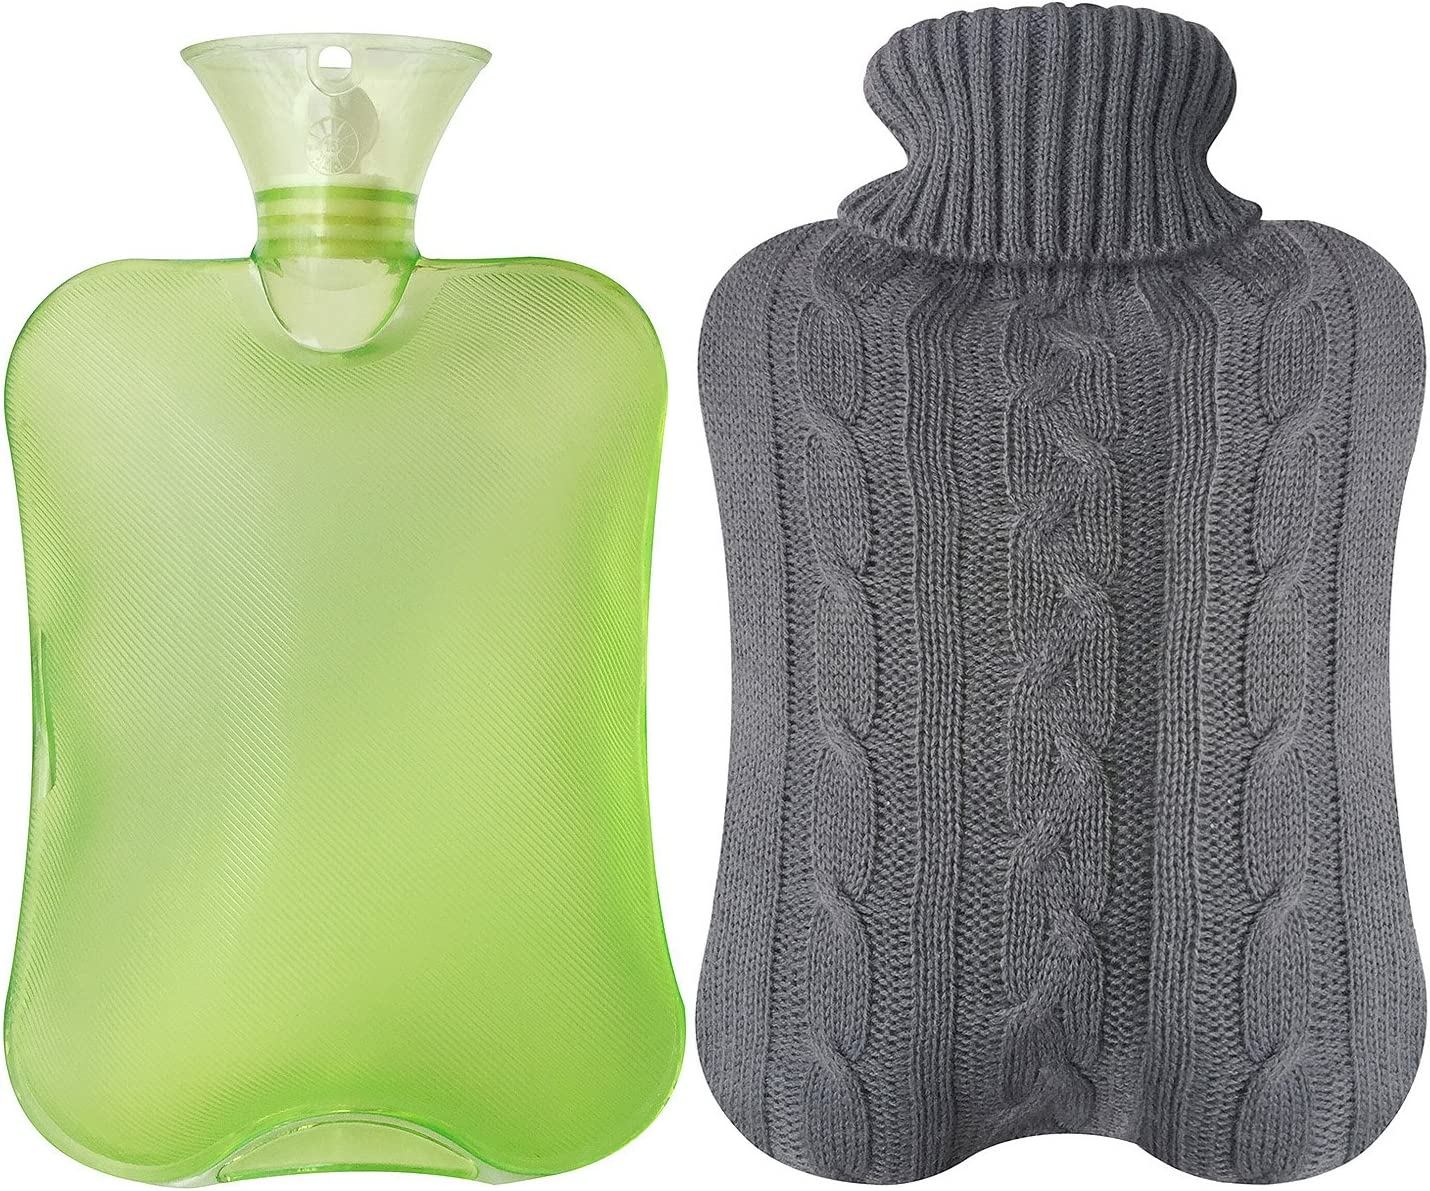 Attmu Classic Rubber Transparent Hot Water Bottlewith Knit Cover - 2 Fl Oz, Green